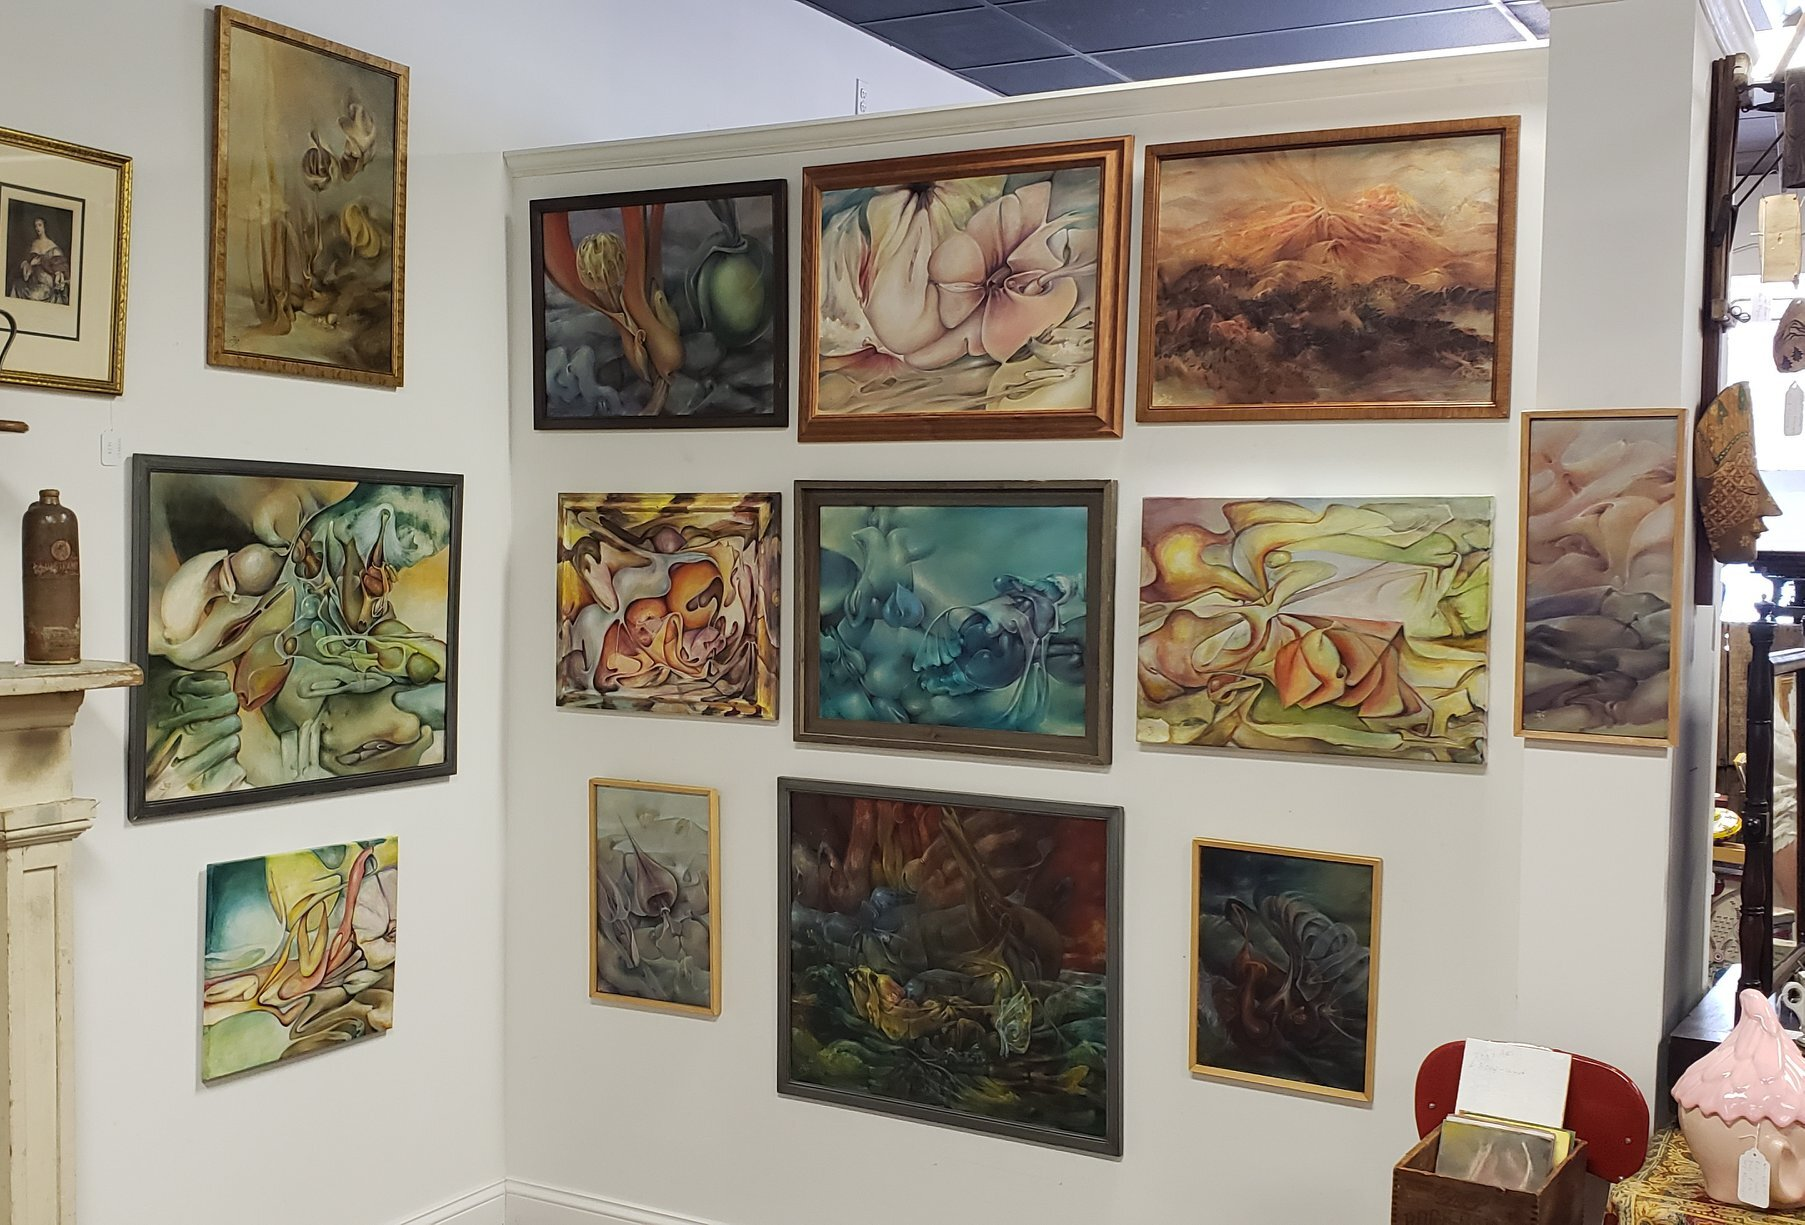 A view of Jan ten Broeke's Artist of the Month exhibition, April 2019